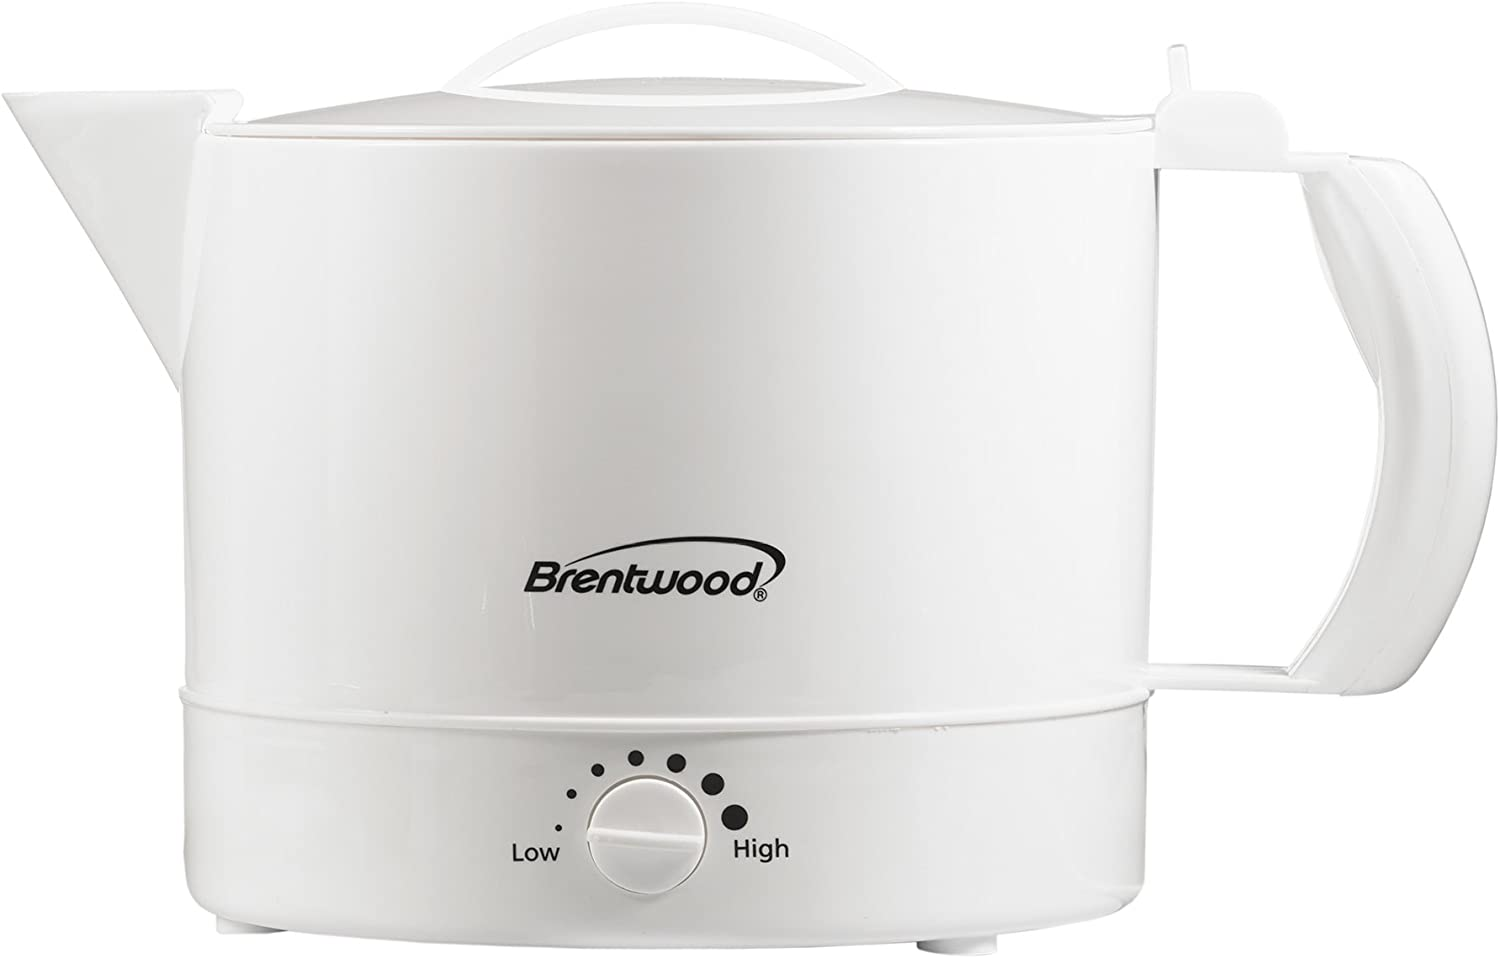 Brentwood KT-32W Electric Kettle Hot Pot BPA Free, 32 oz, White